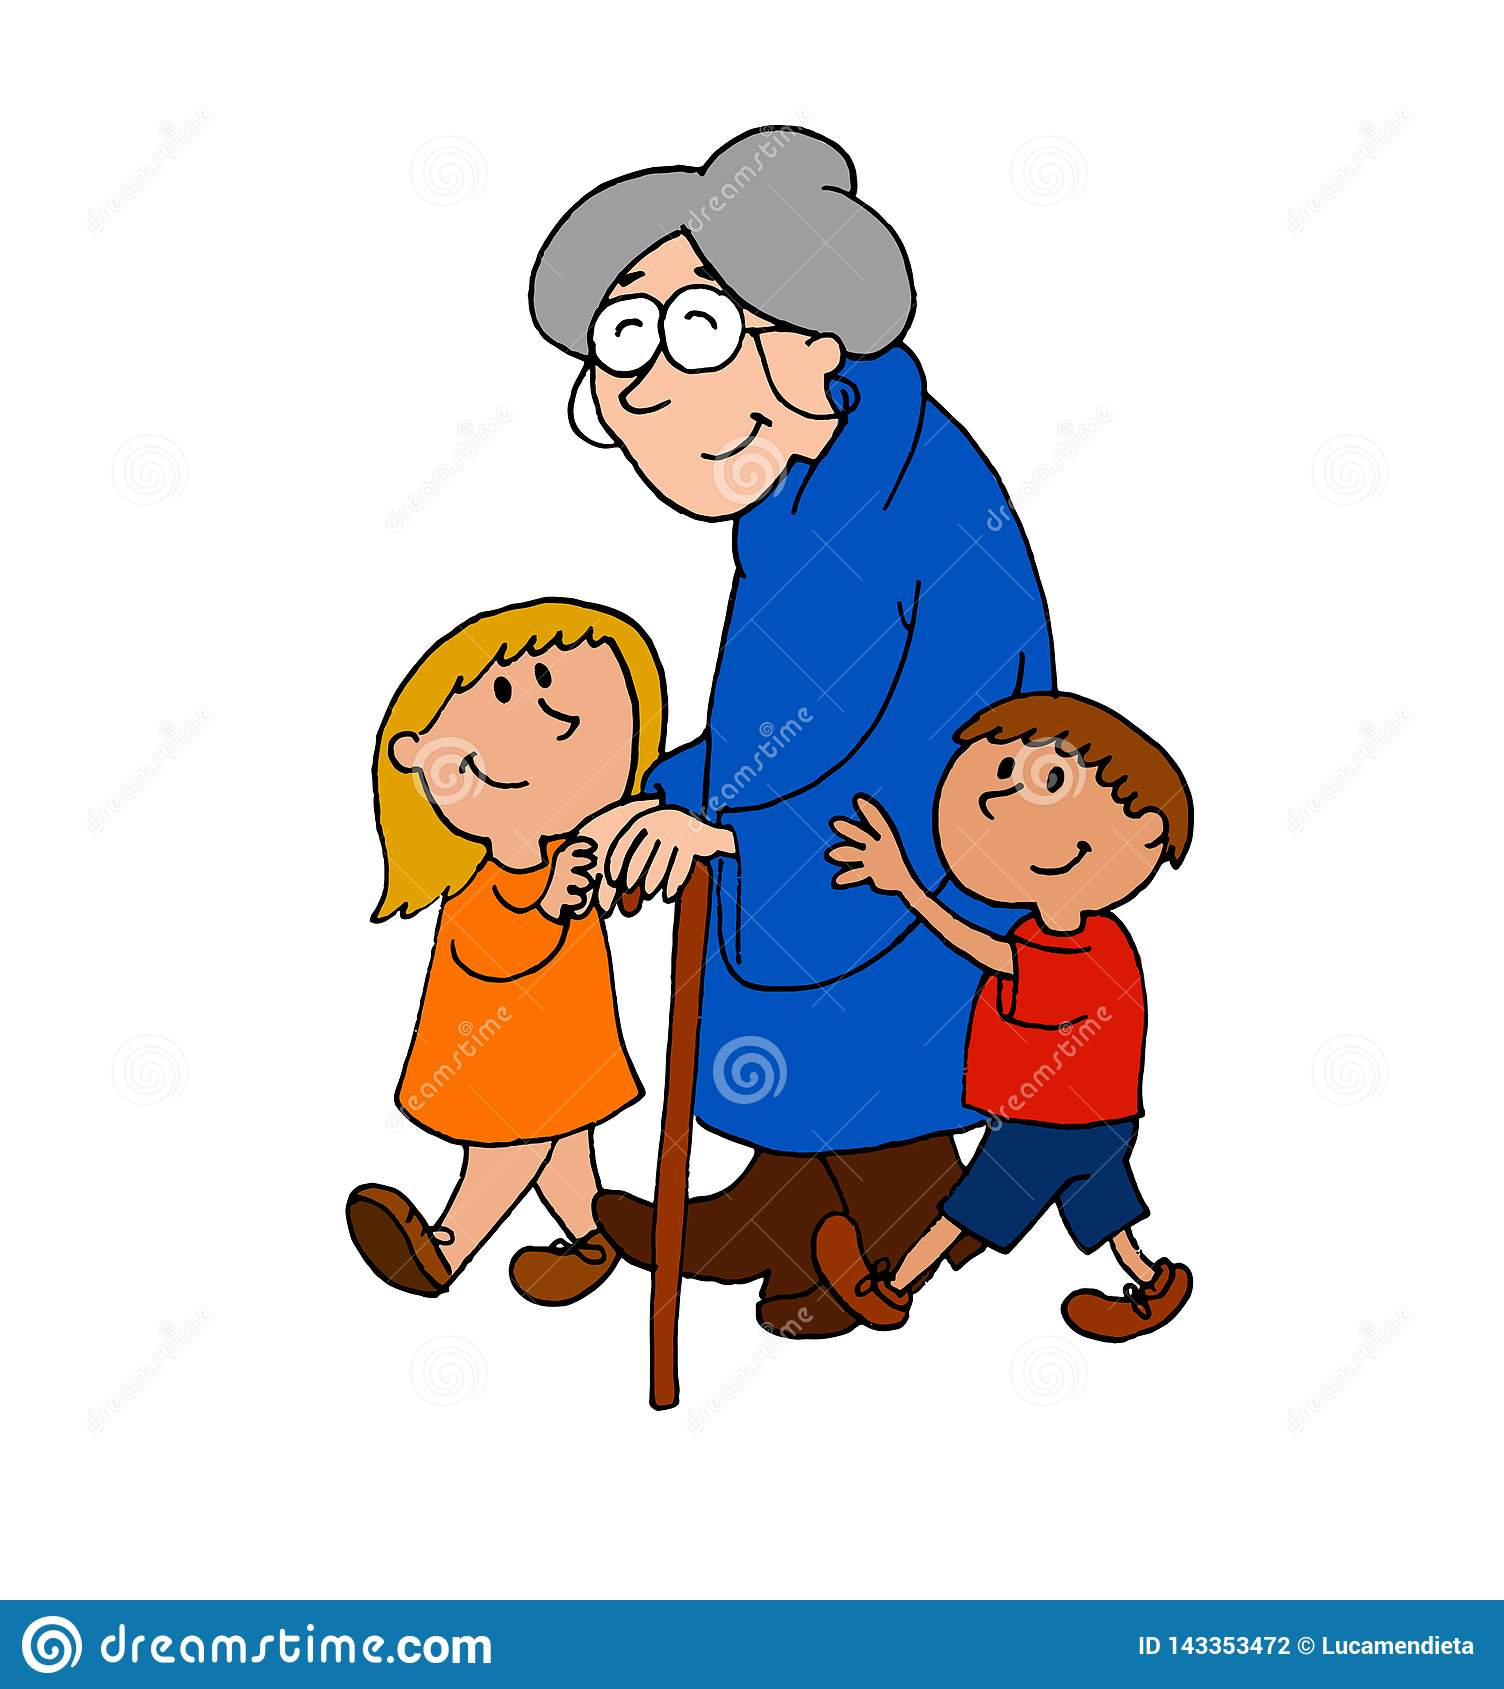 Cute Illustration Of A Boy And A Girl Helping An Elderly Woman Walk.